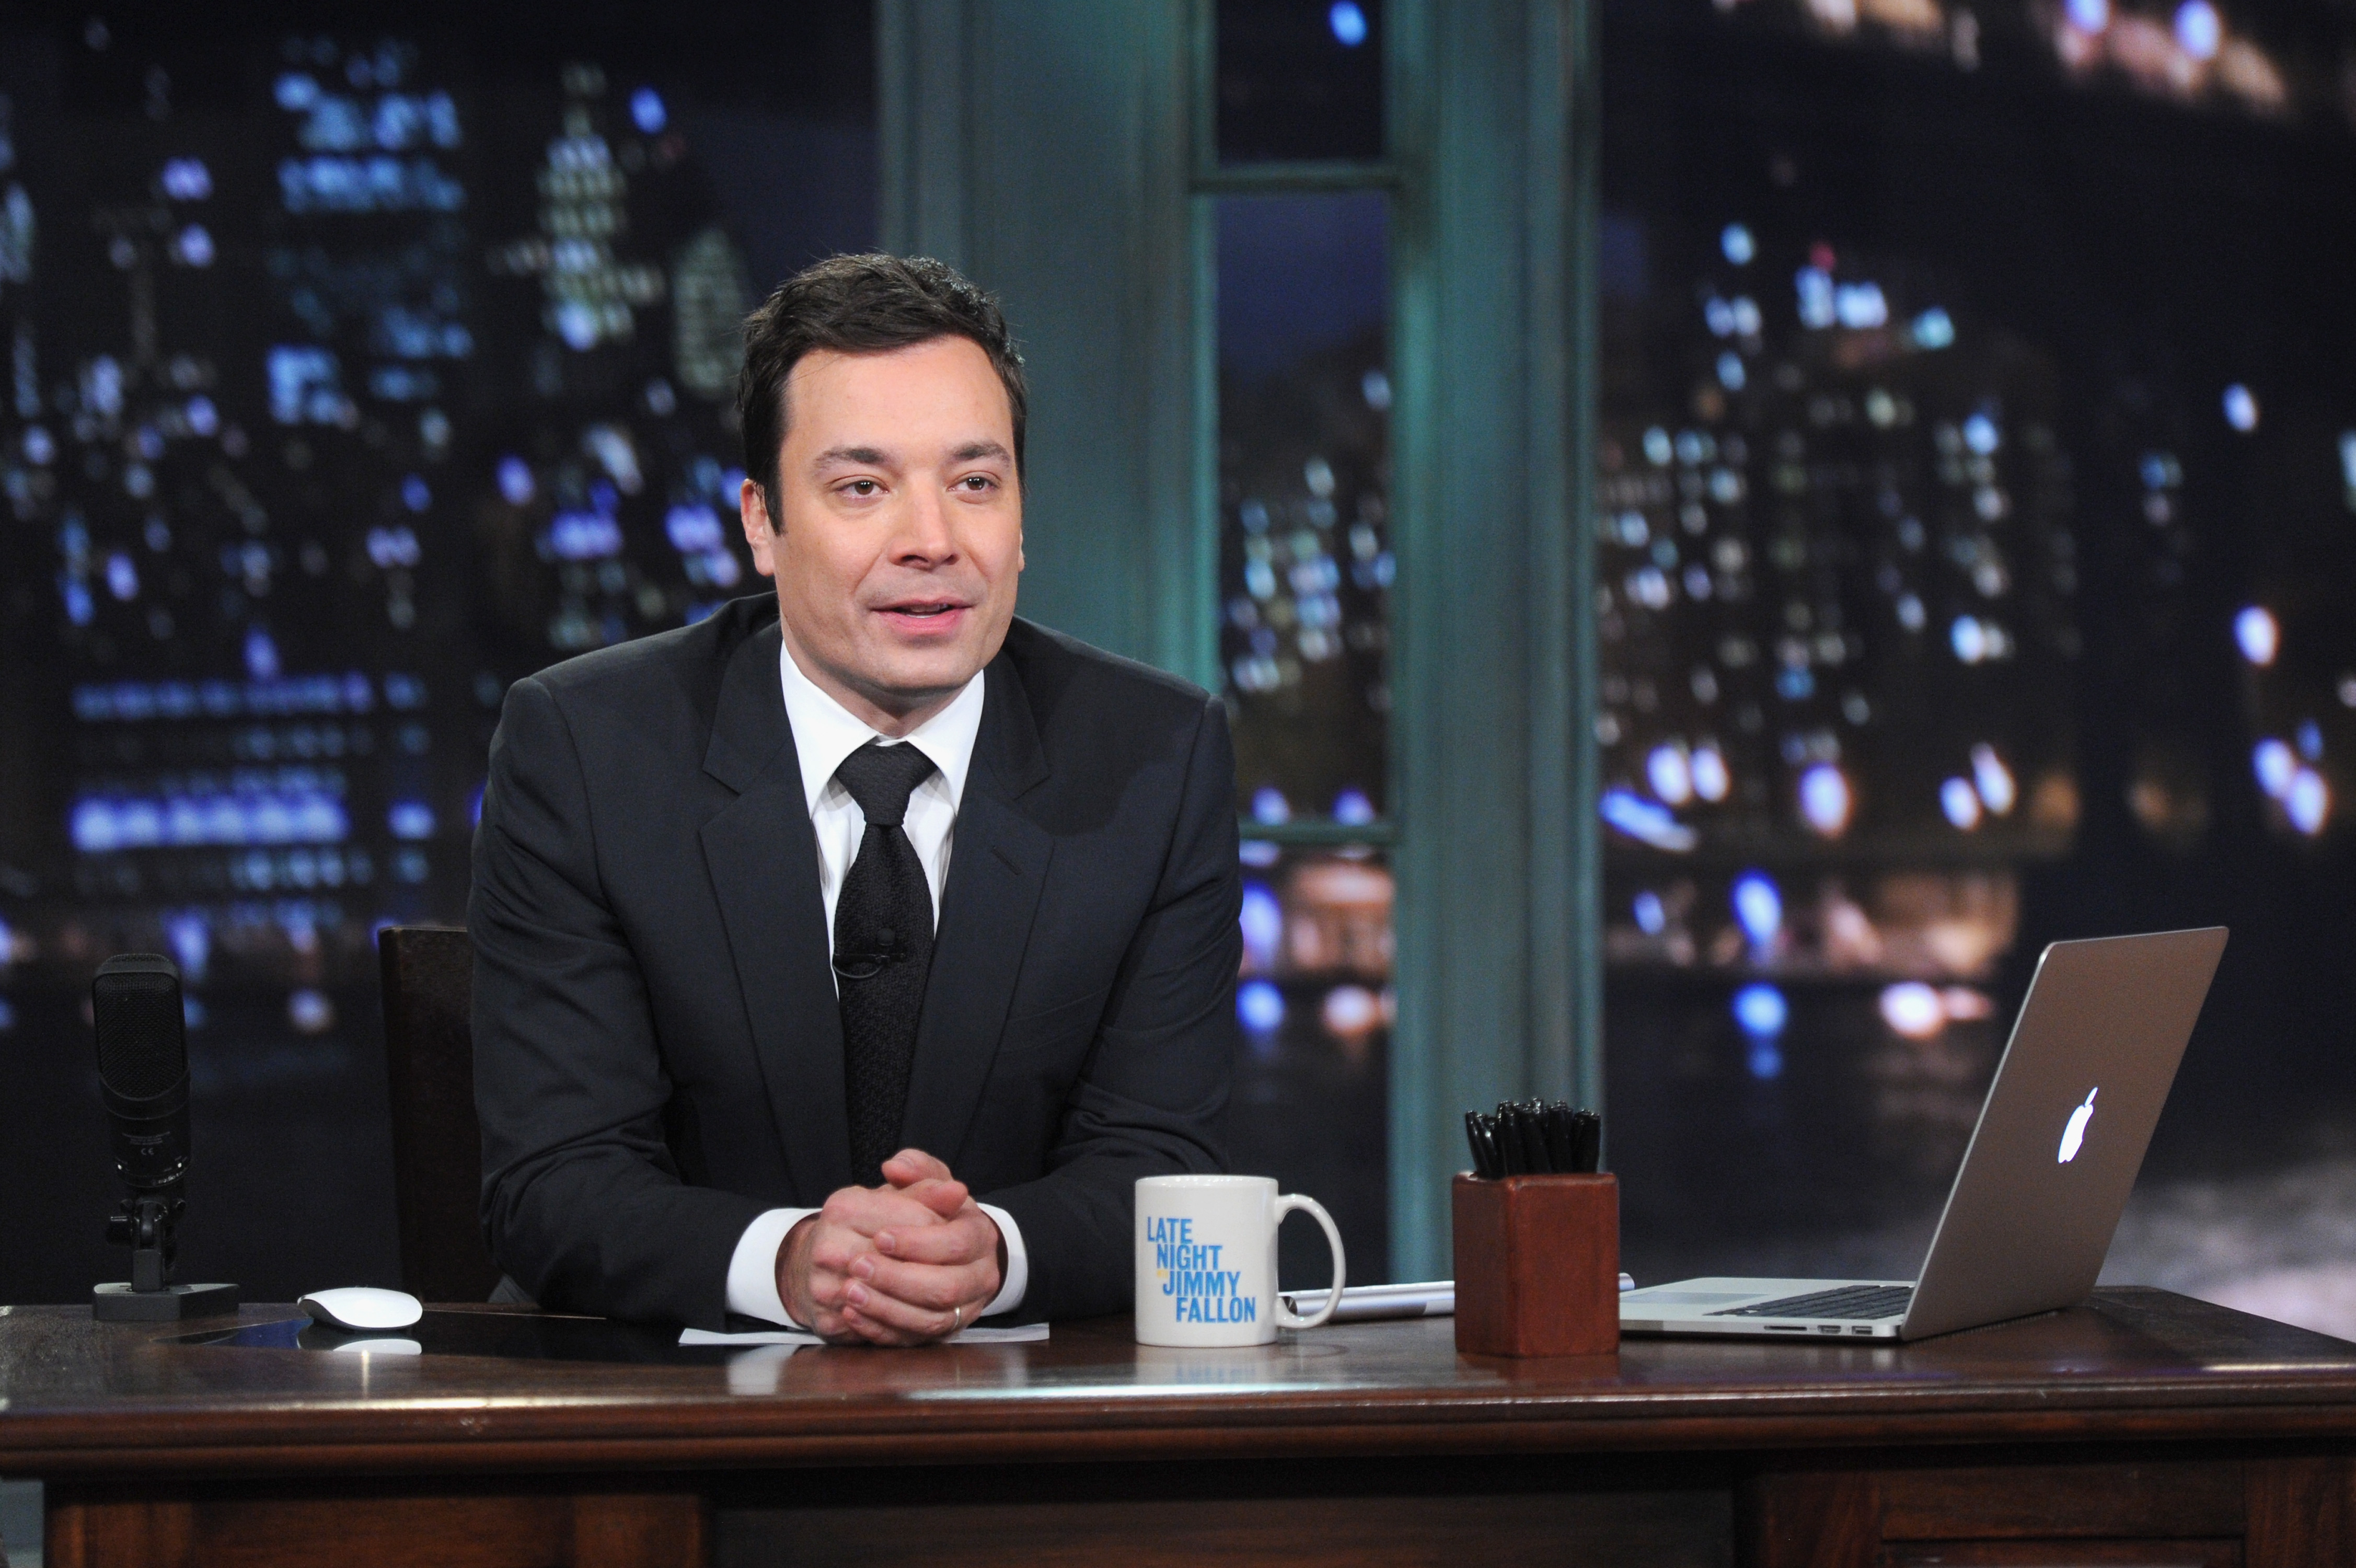 late night show with jimmy fallon